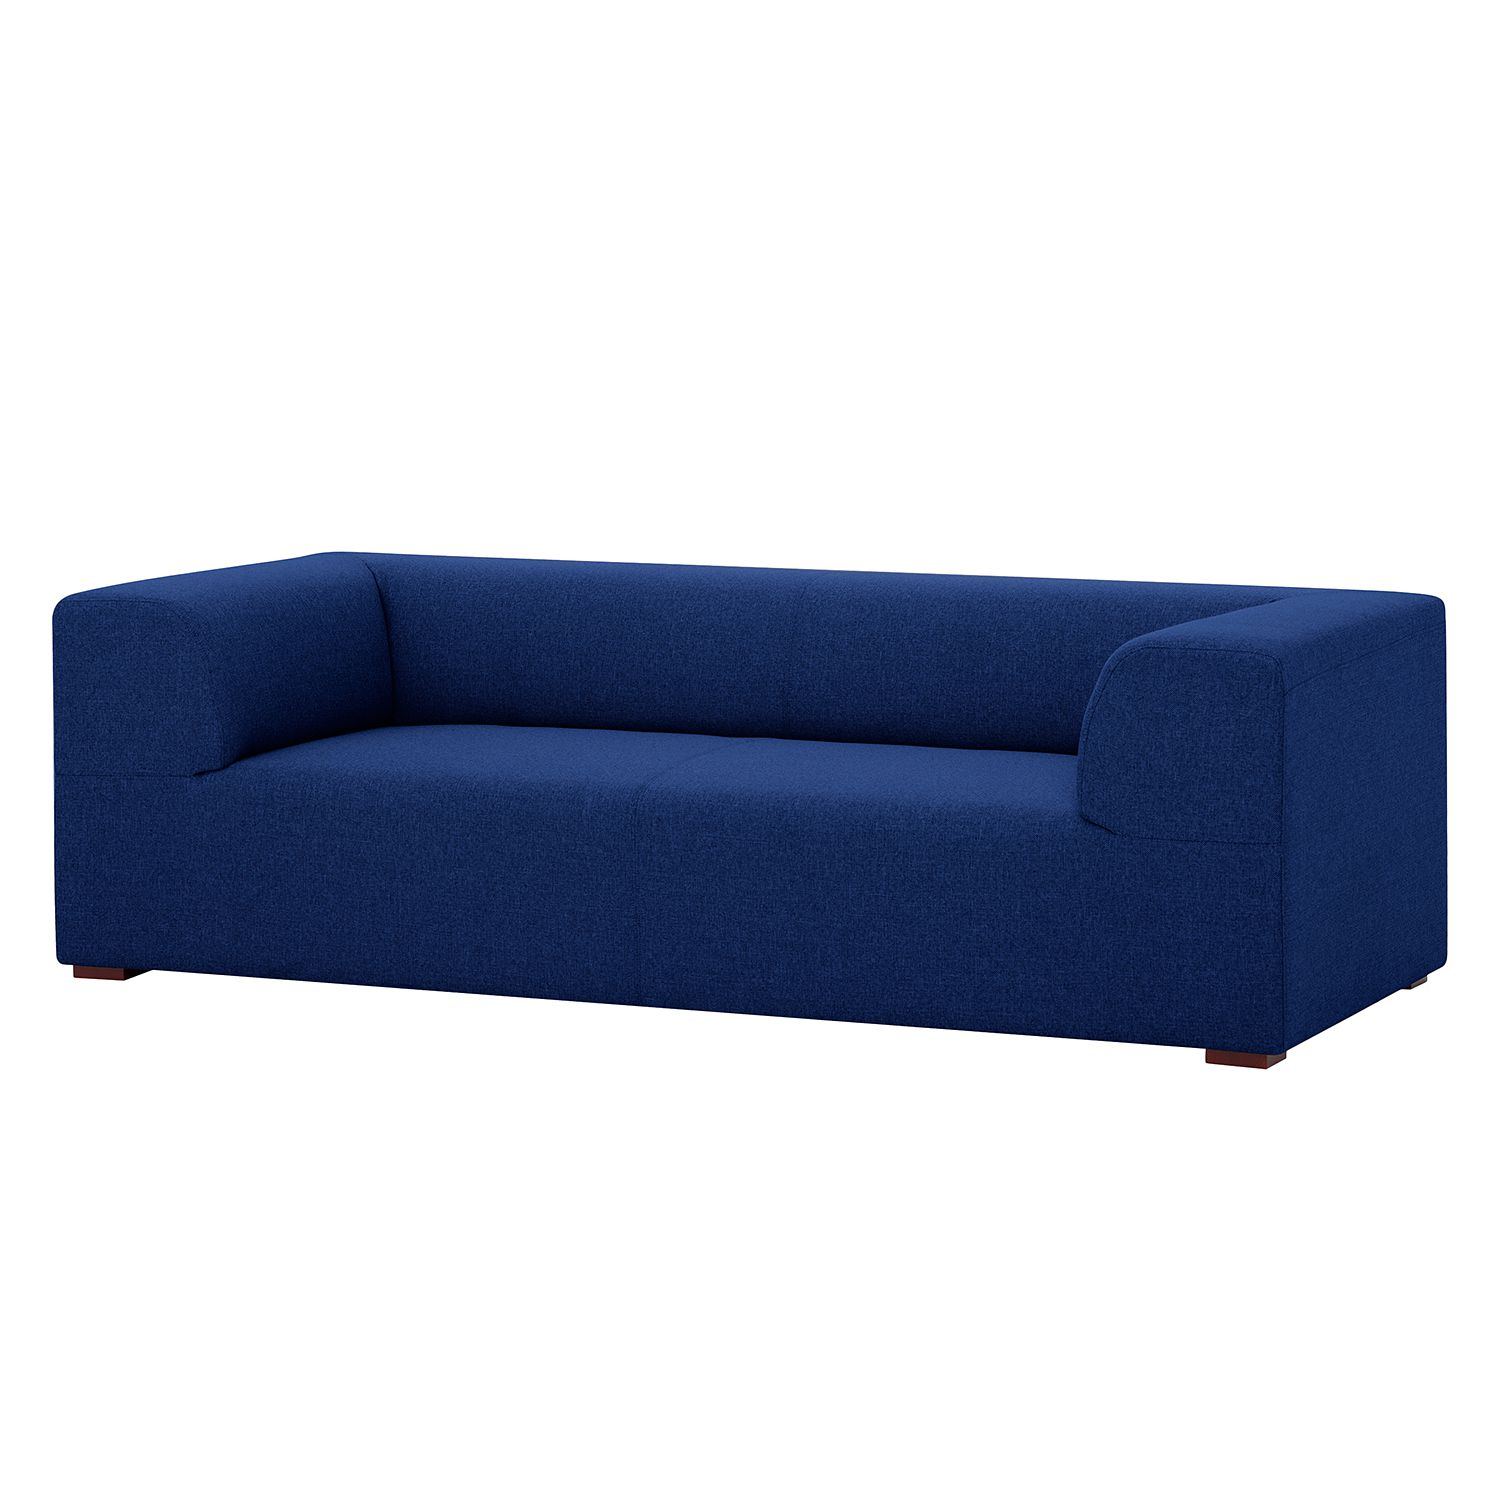 scrapeo 2 canap s tissu bleu 2 et 3 places donner contre retrait. Black Bedroom Furniture Sets. Home Design Ideas